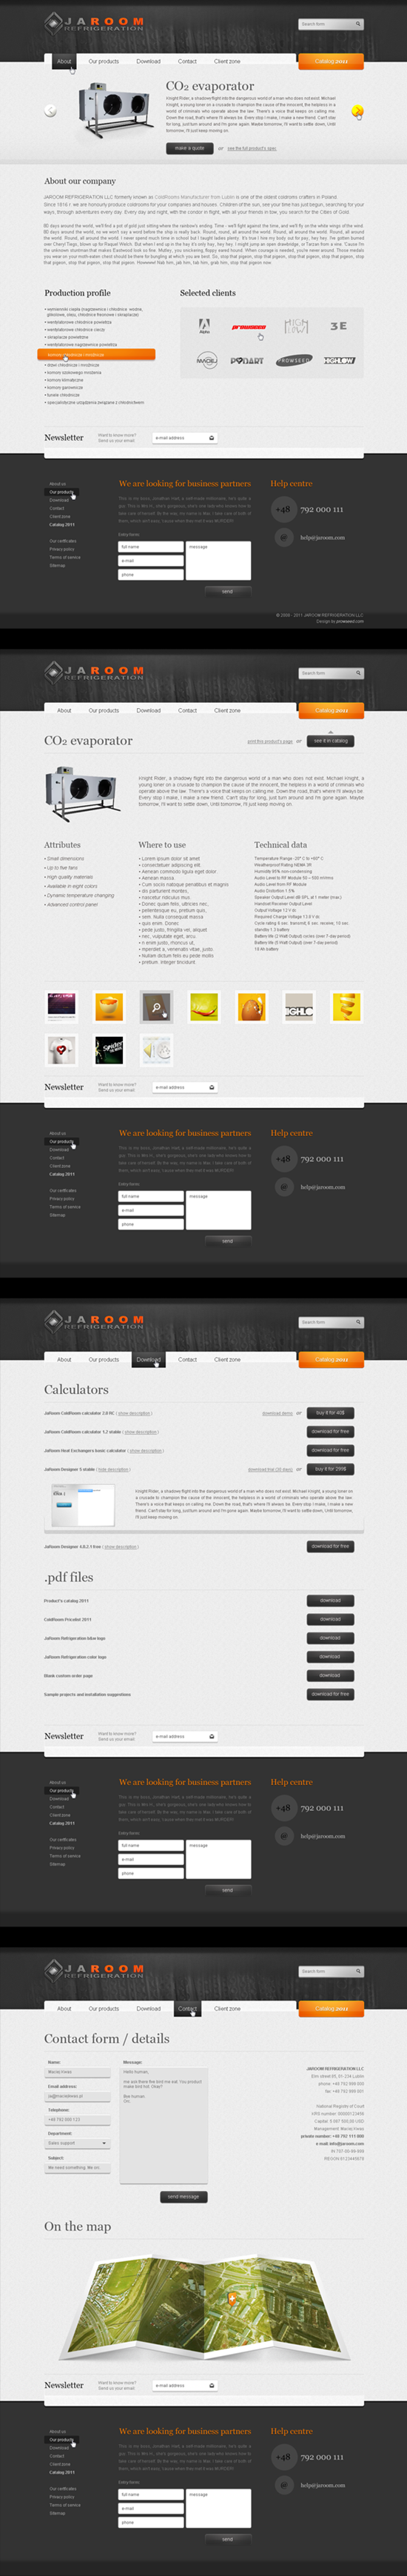 HOW TO CREATE BUSINESS TEMPLATE IN PHOTOSHOP